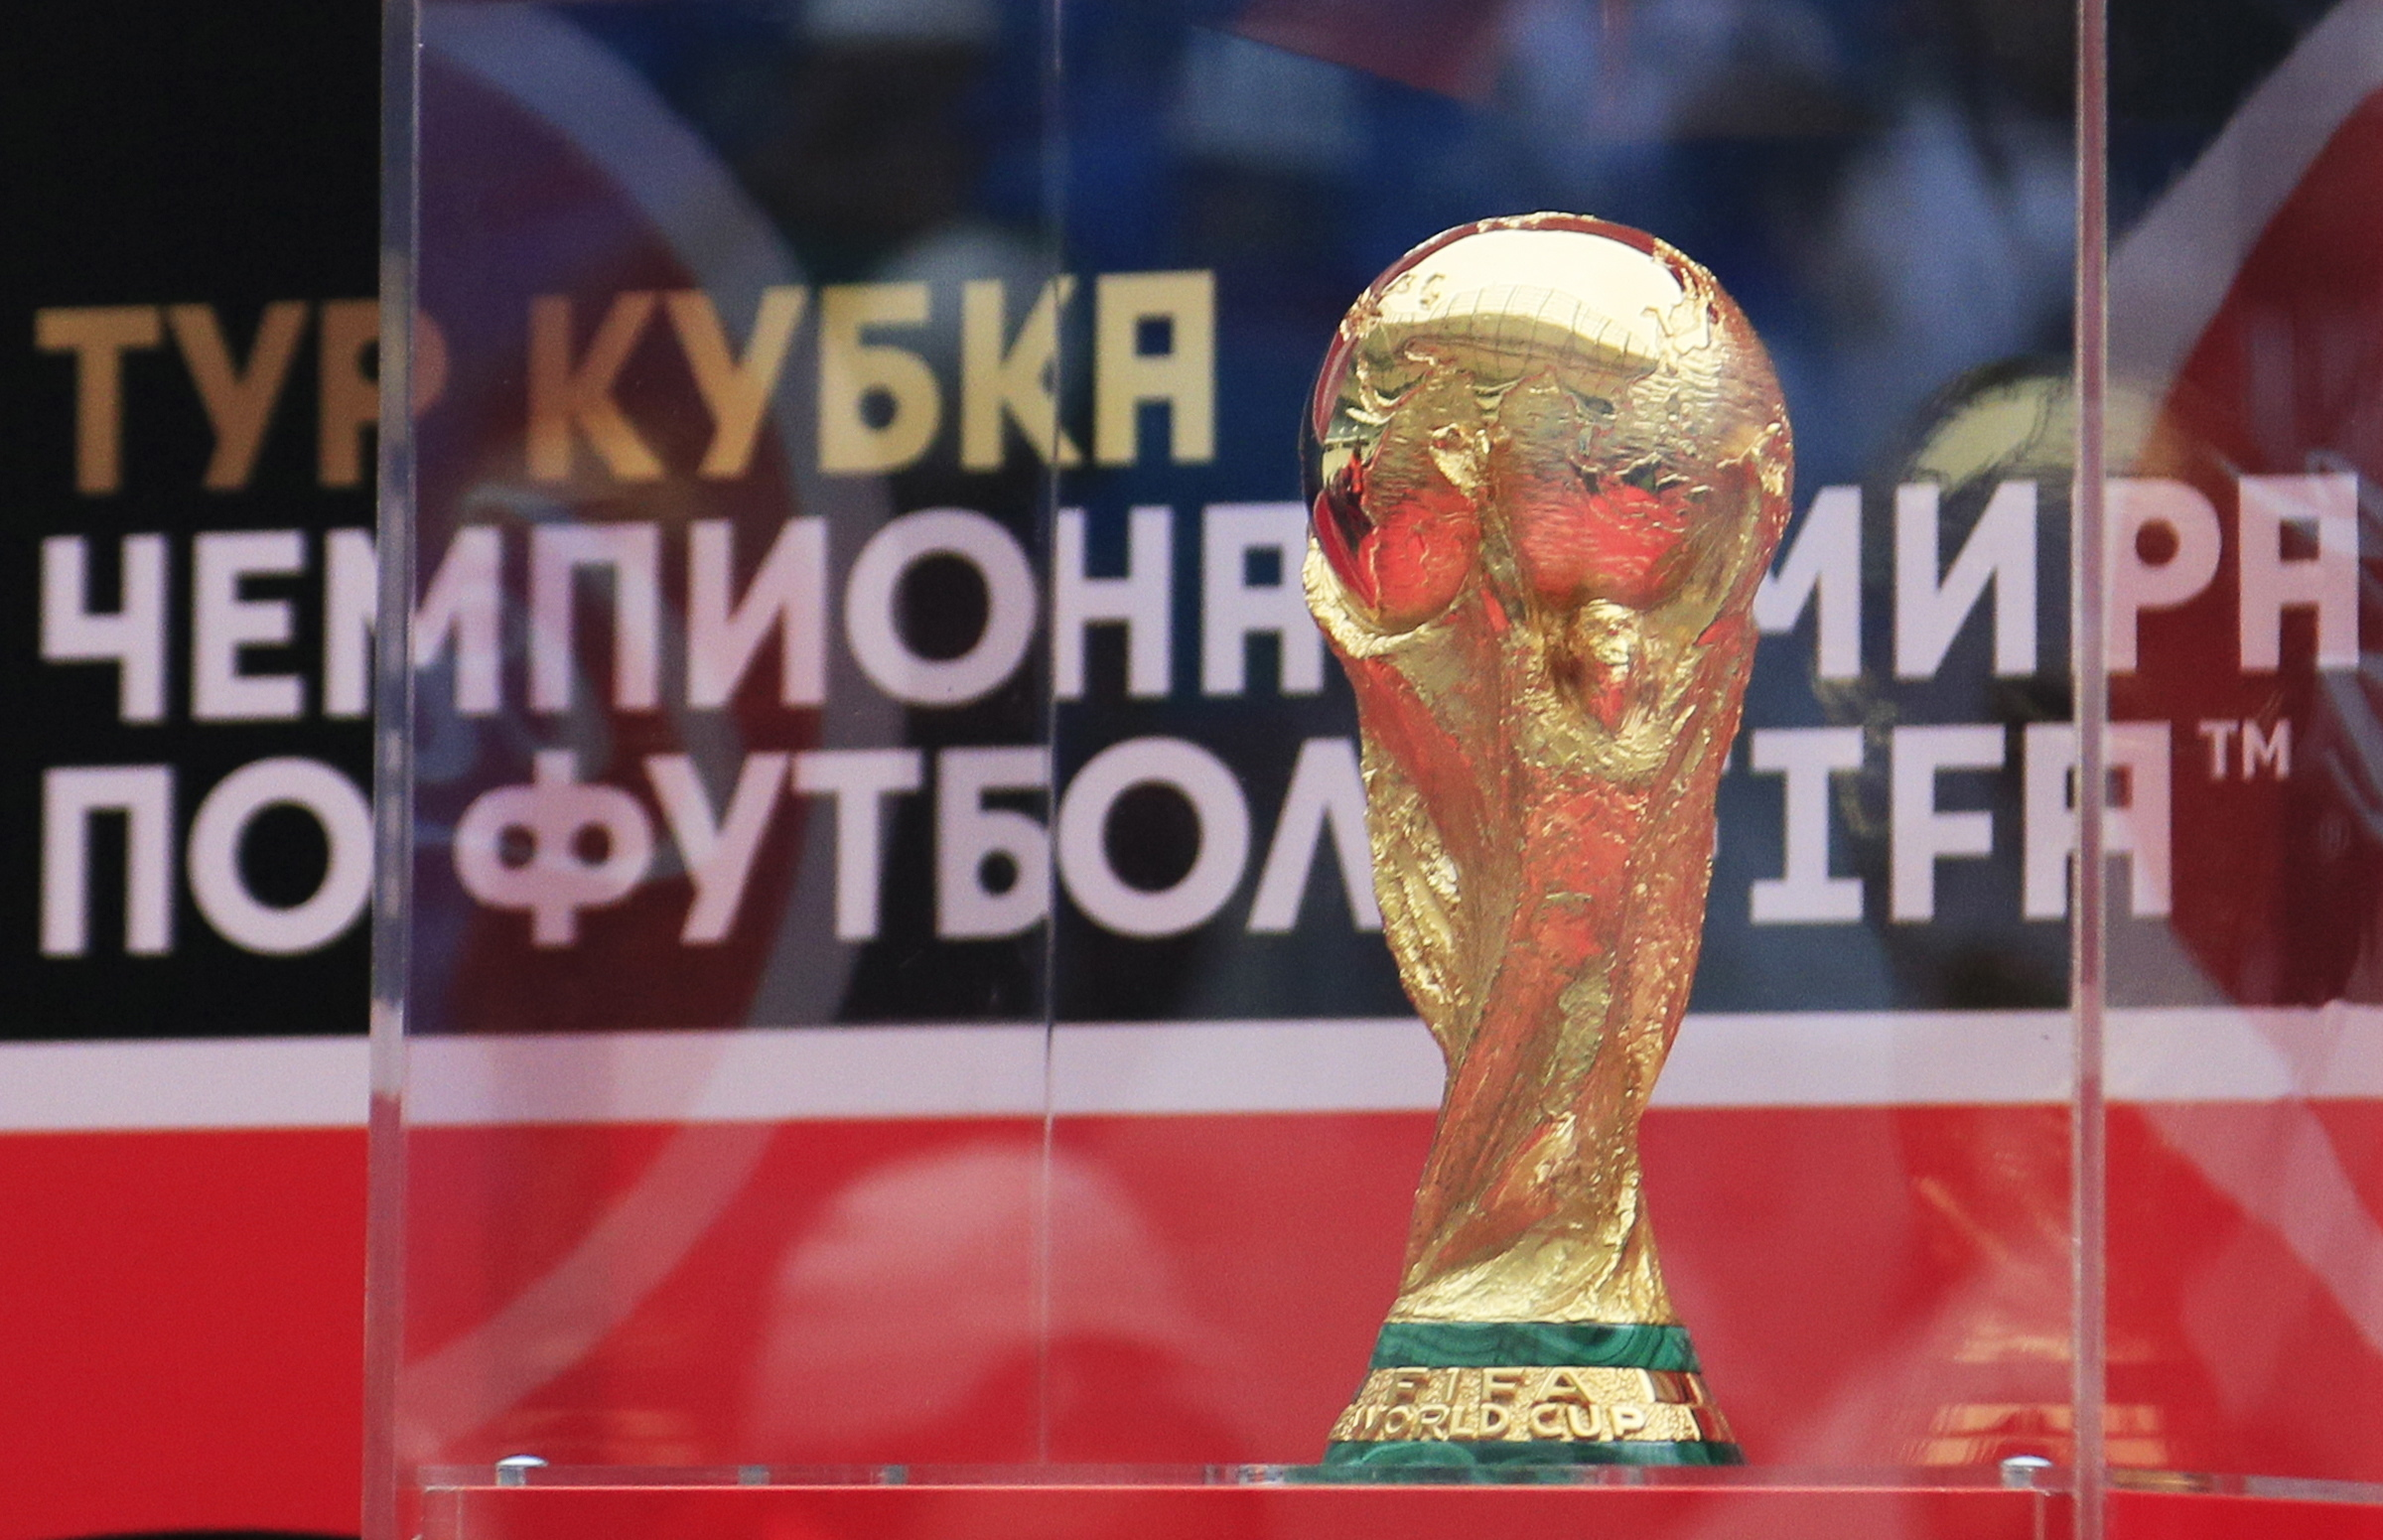 World Cup trophy (Dmitry RogulinTASS via Getty Images)